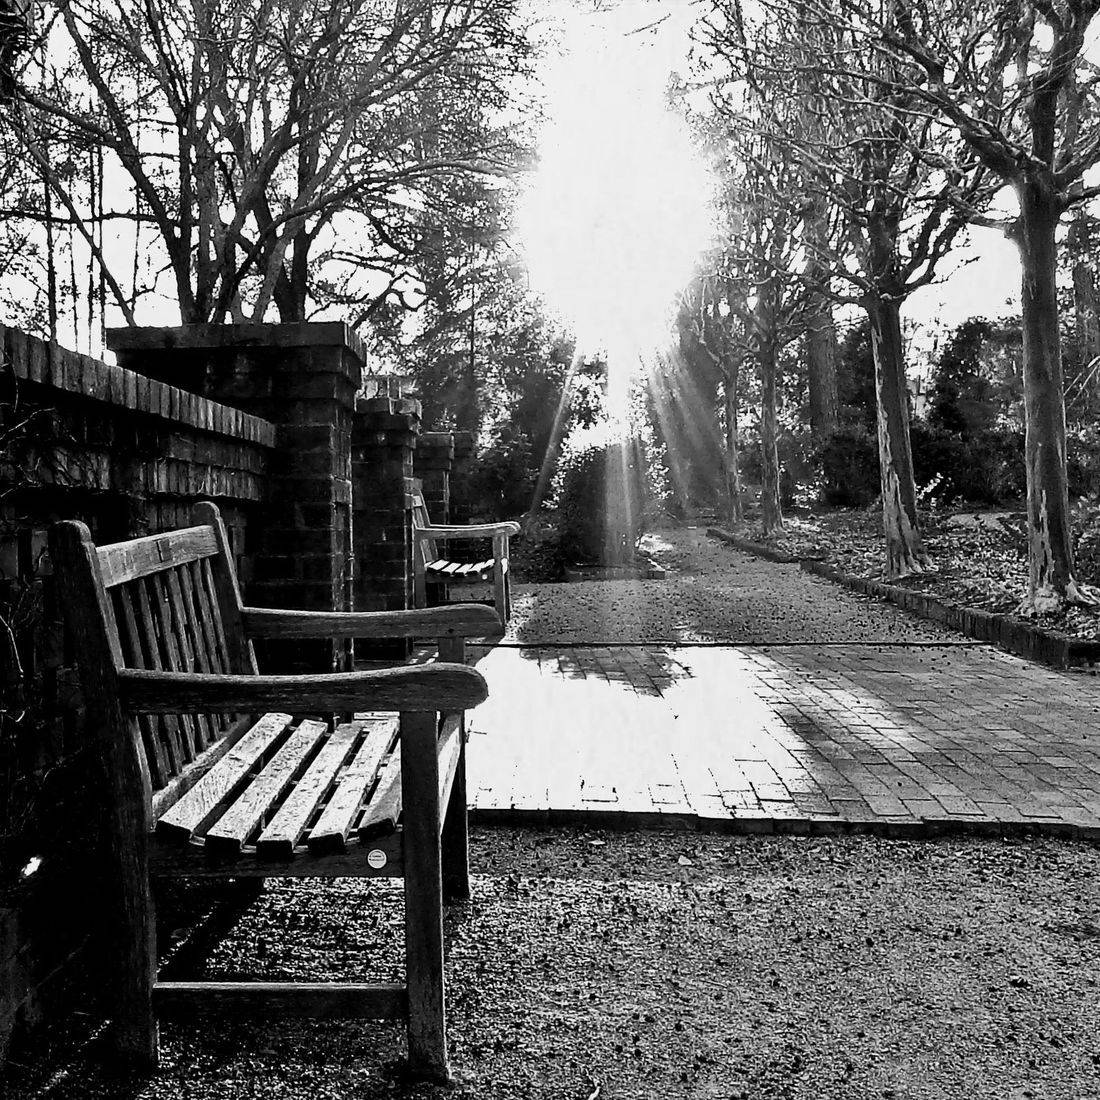 Park, Sunlight, Benches, Garden, Trees